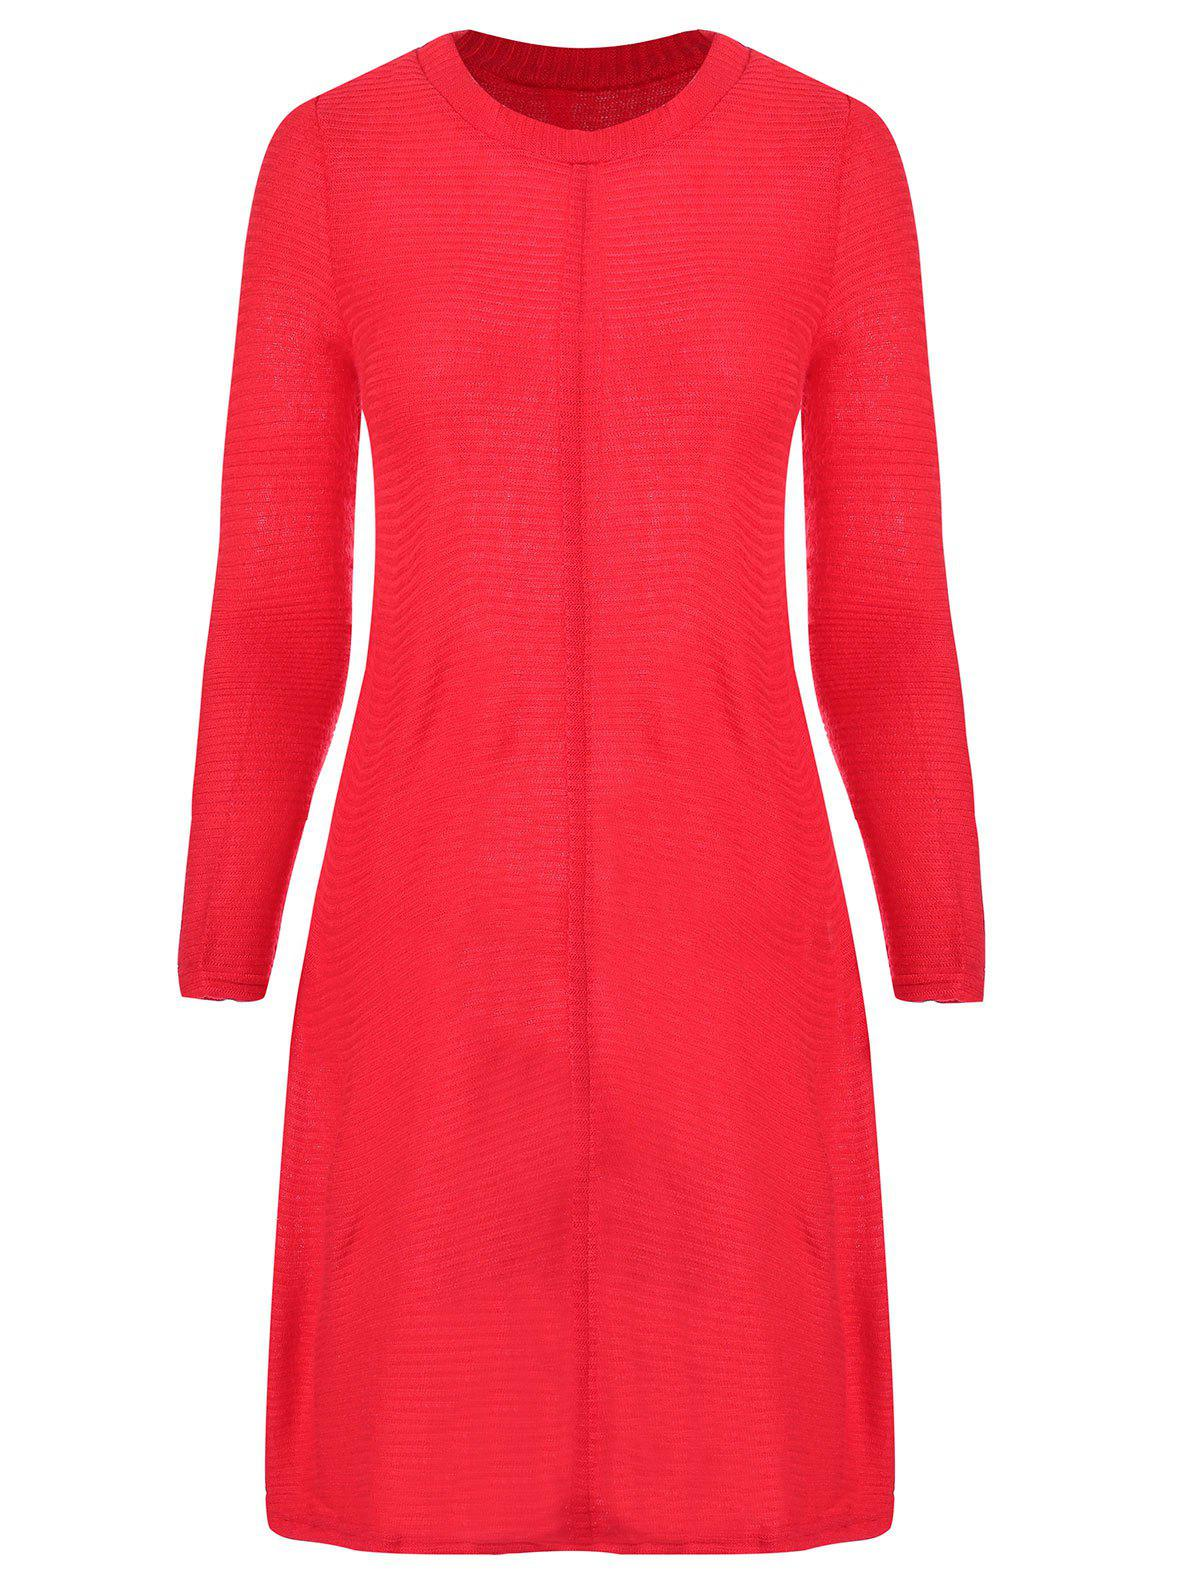 Round Collar Long Sleeve Knitted Dress